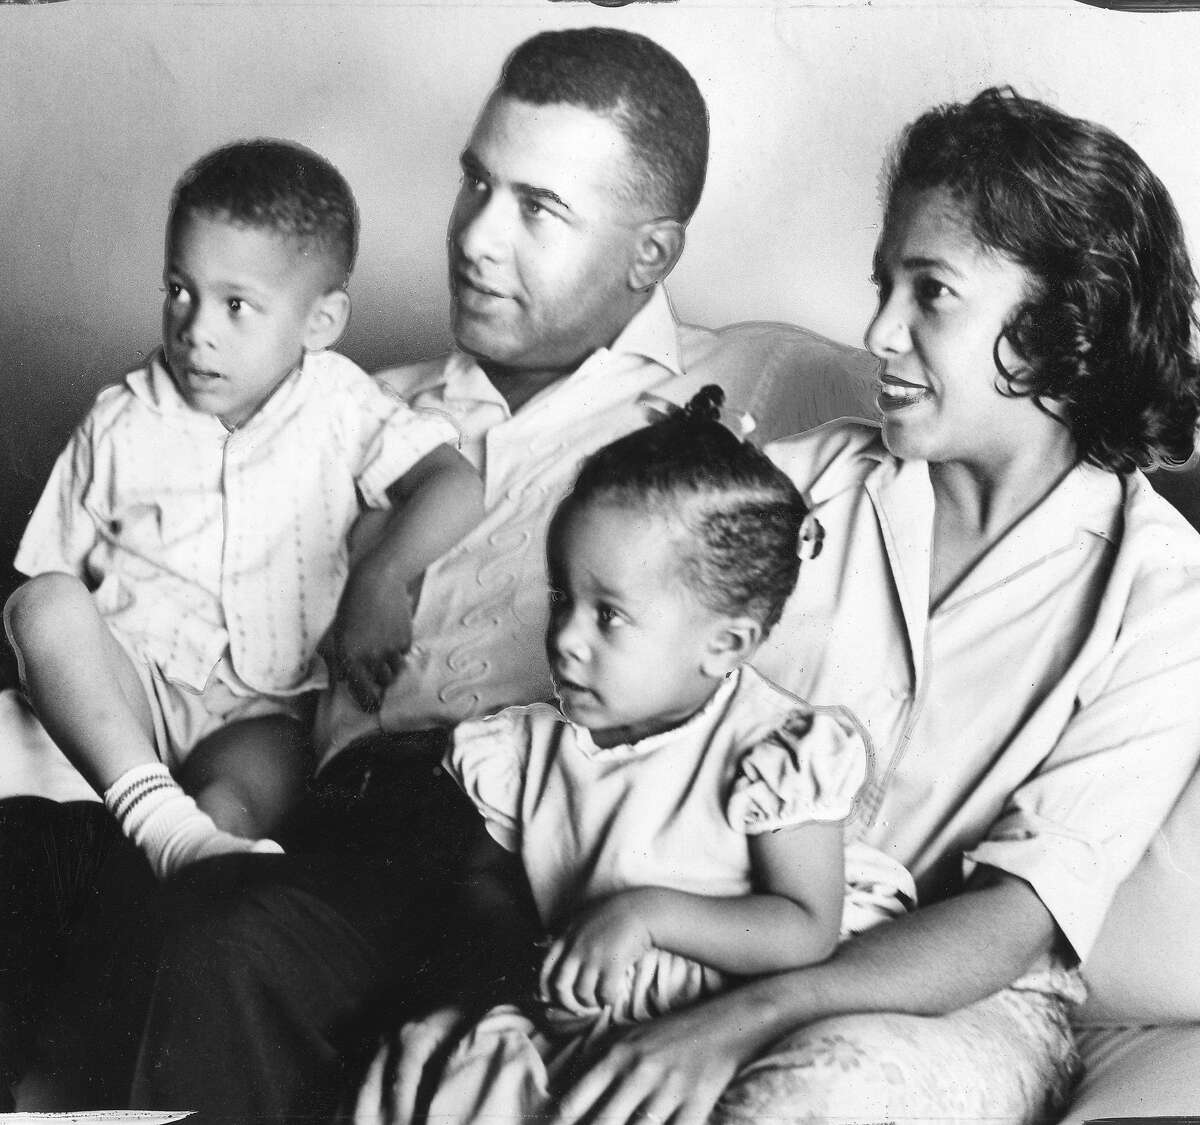 Dr. Price Cobbs, and his family would move out of Westlake after his children were harassed August 5, 1961 Photo ran 08/07/1961, p. 5